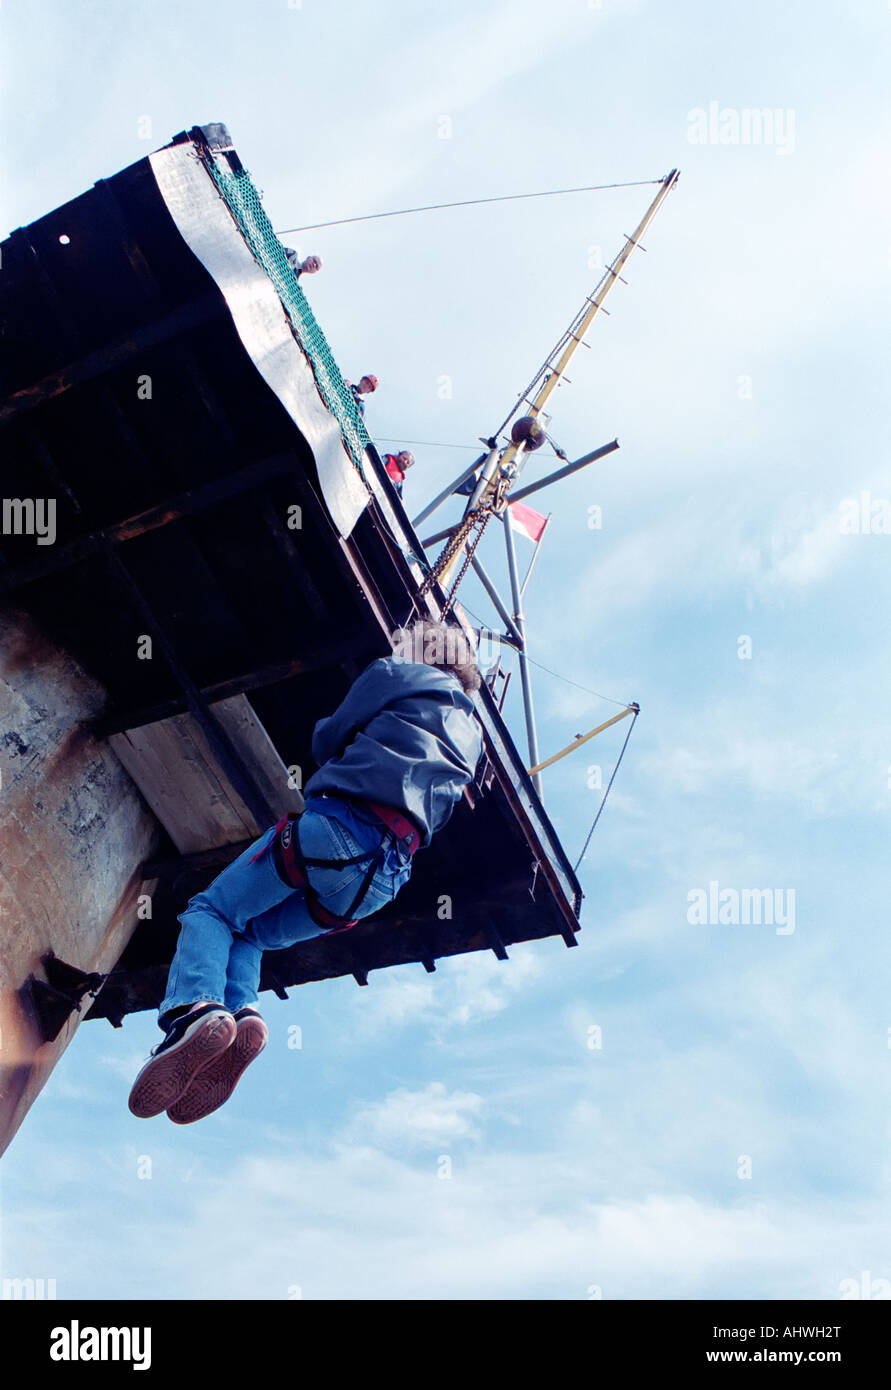 A visitor to the Principality of Sealand is pulled up on a winch. Stock Photo